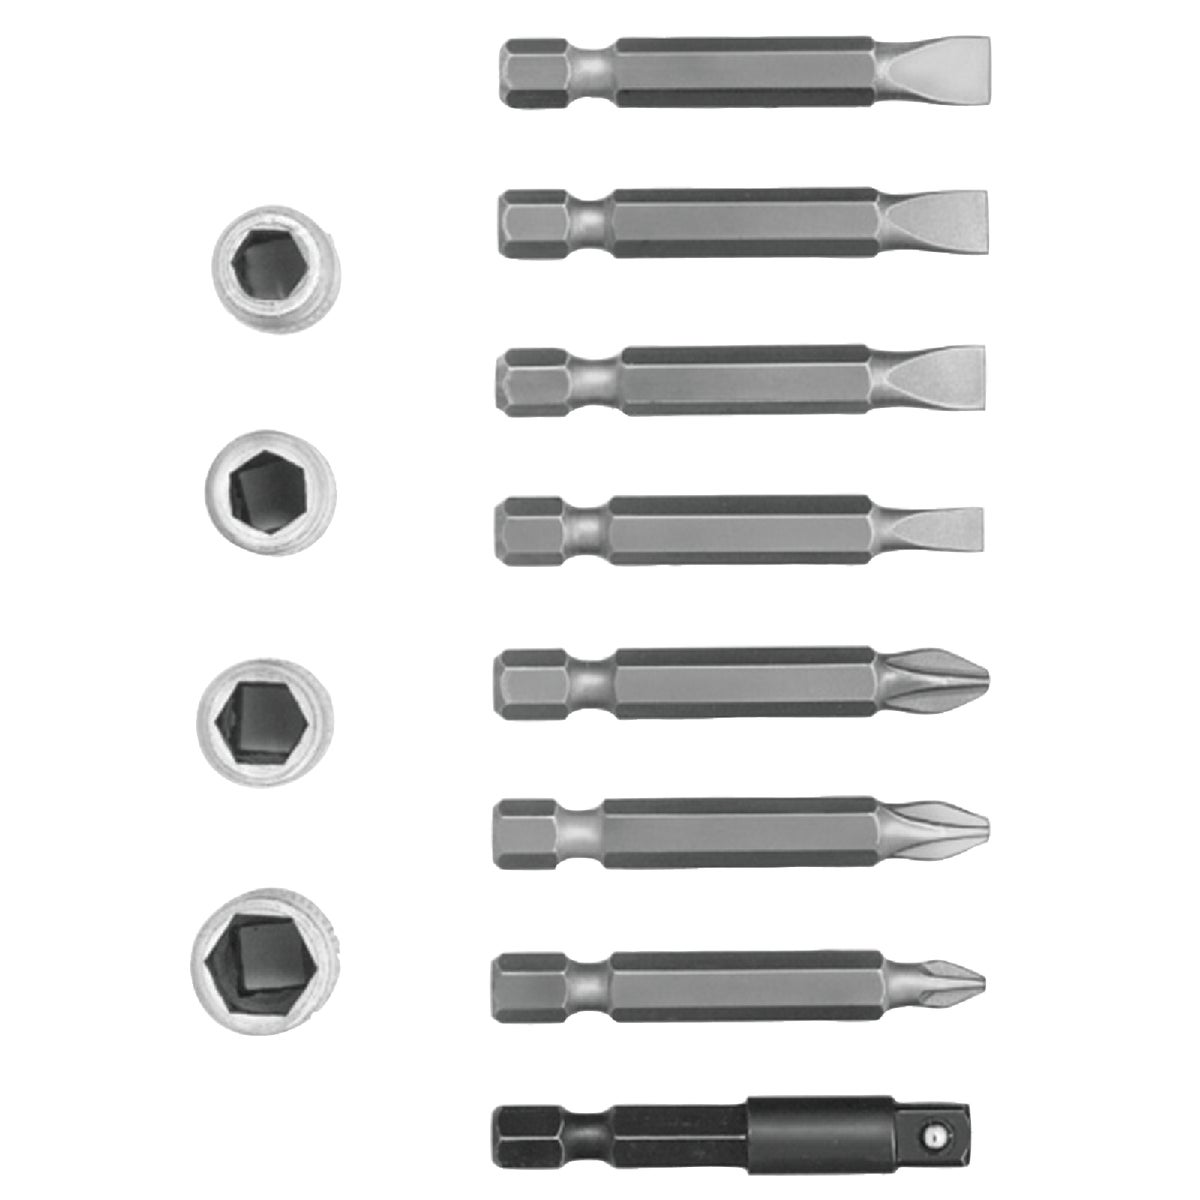 SCREW/NUT BIT SET - 3057014 by Irwin Industr Tool